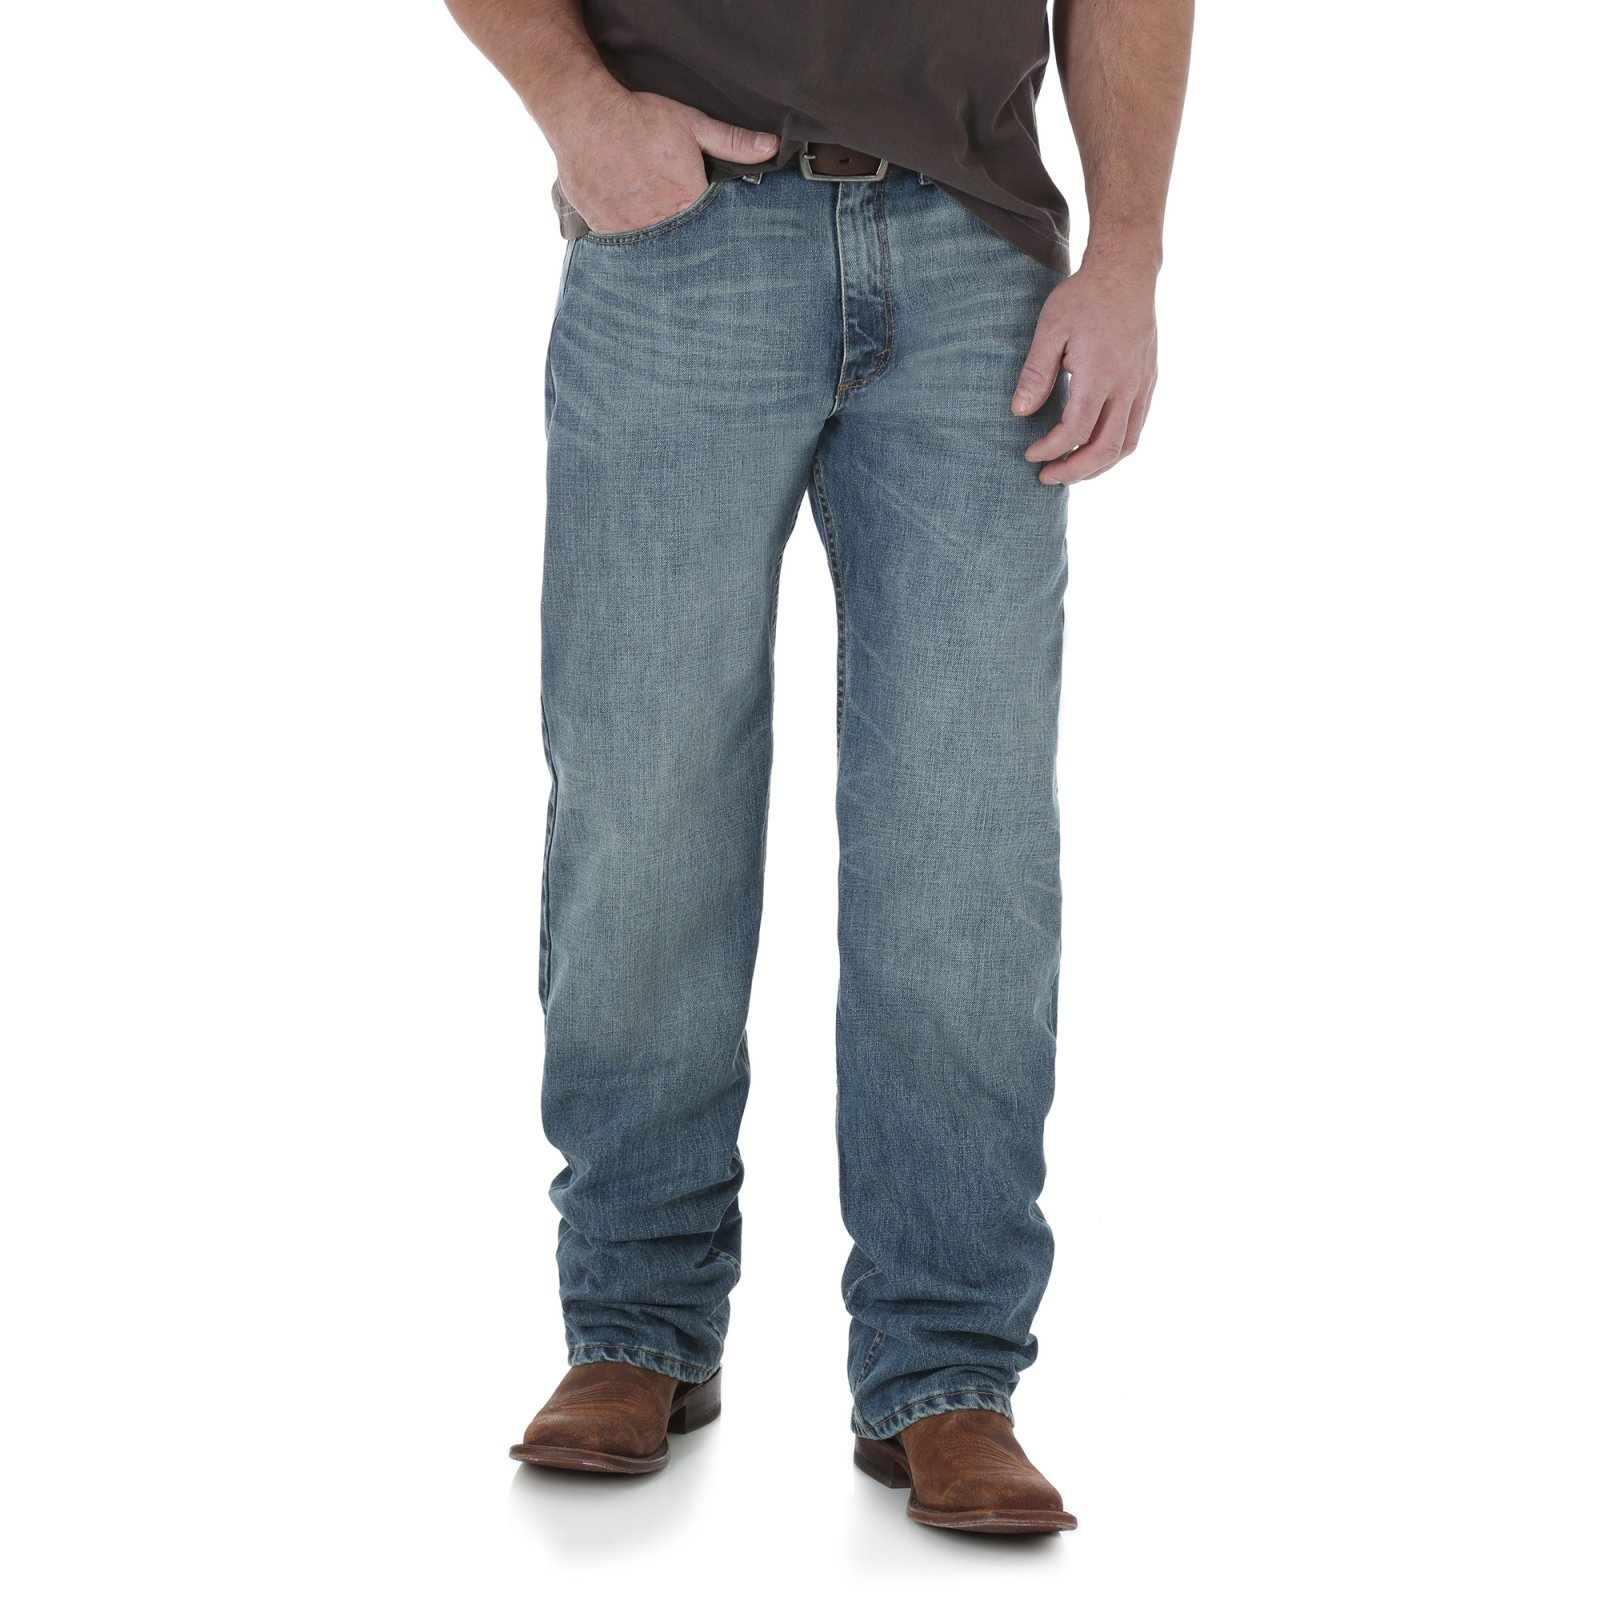 Men's 20X Competition Jean from Wrangler